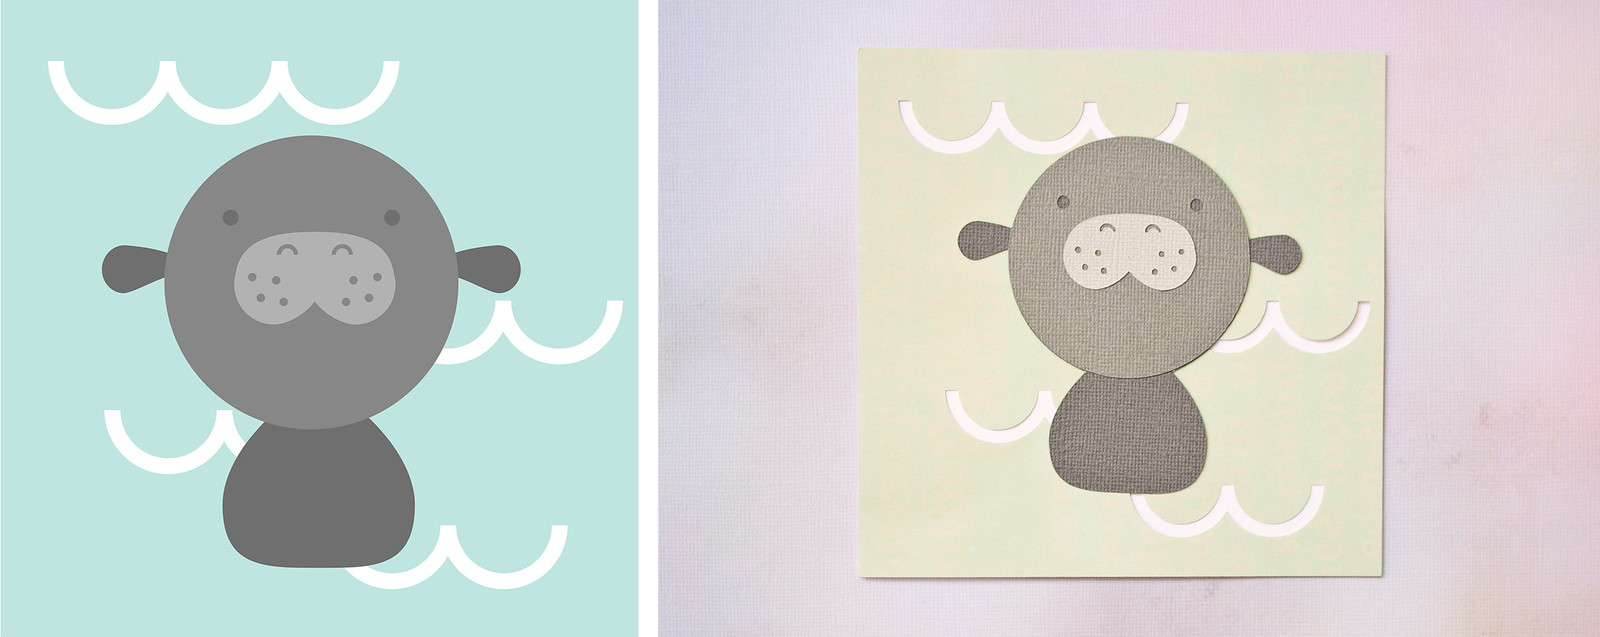 manatee illustration and papercut